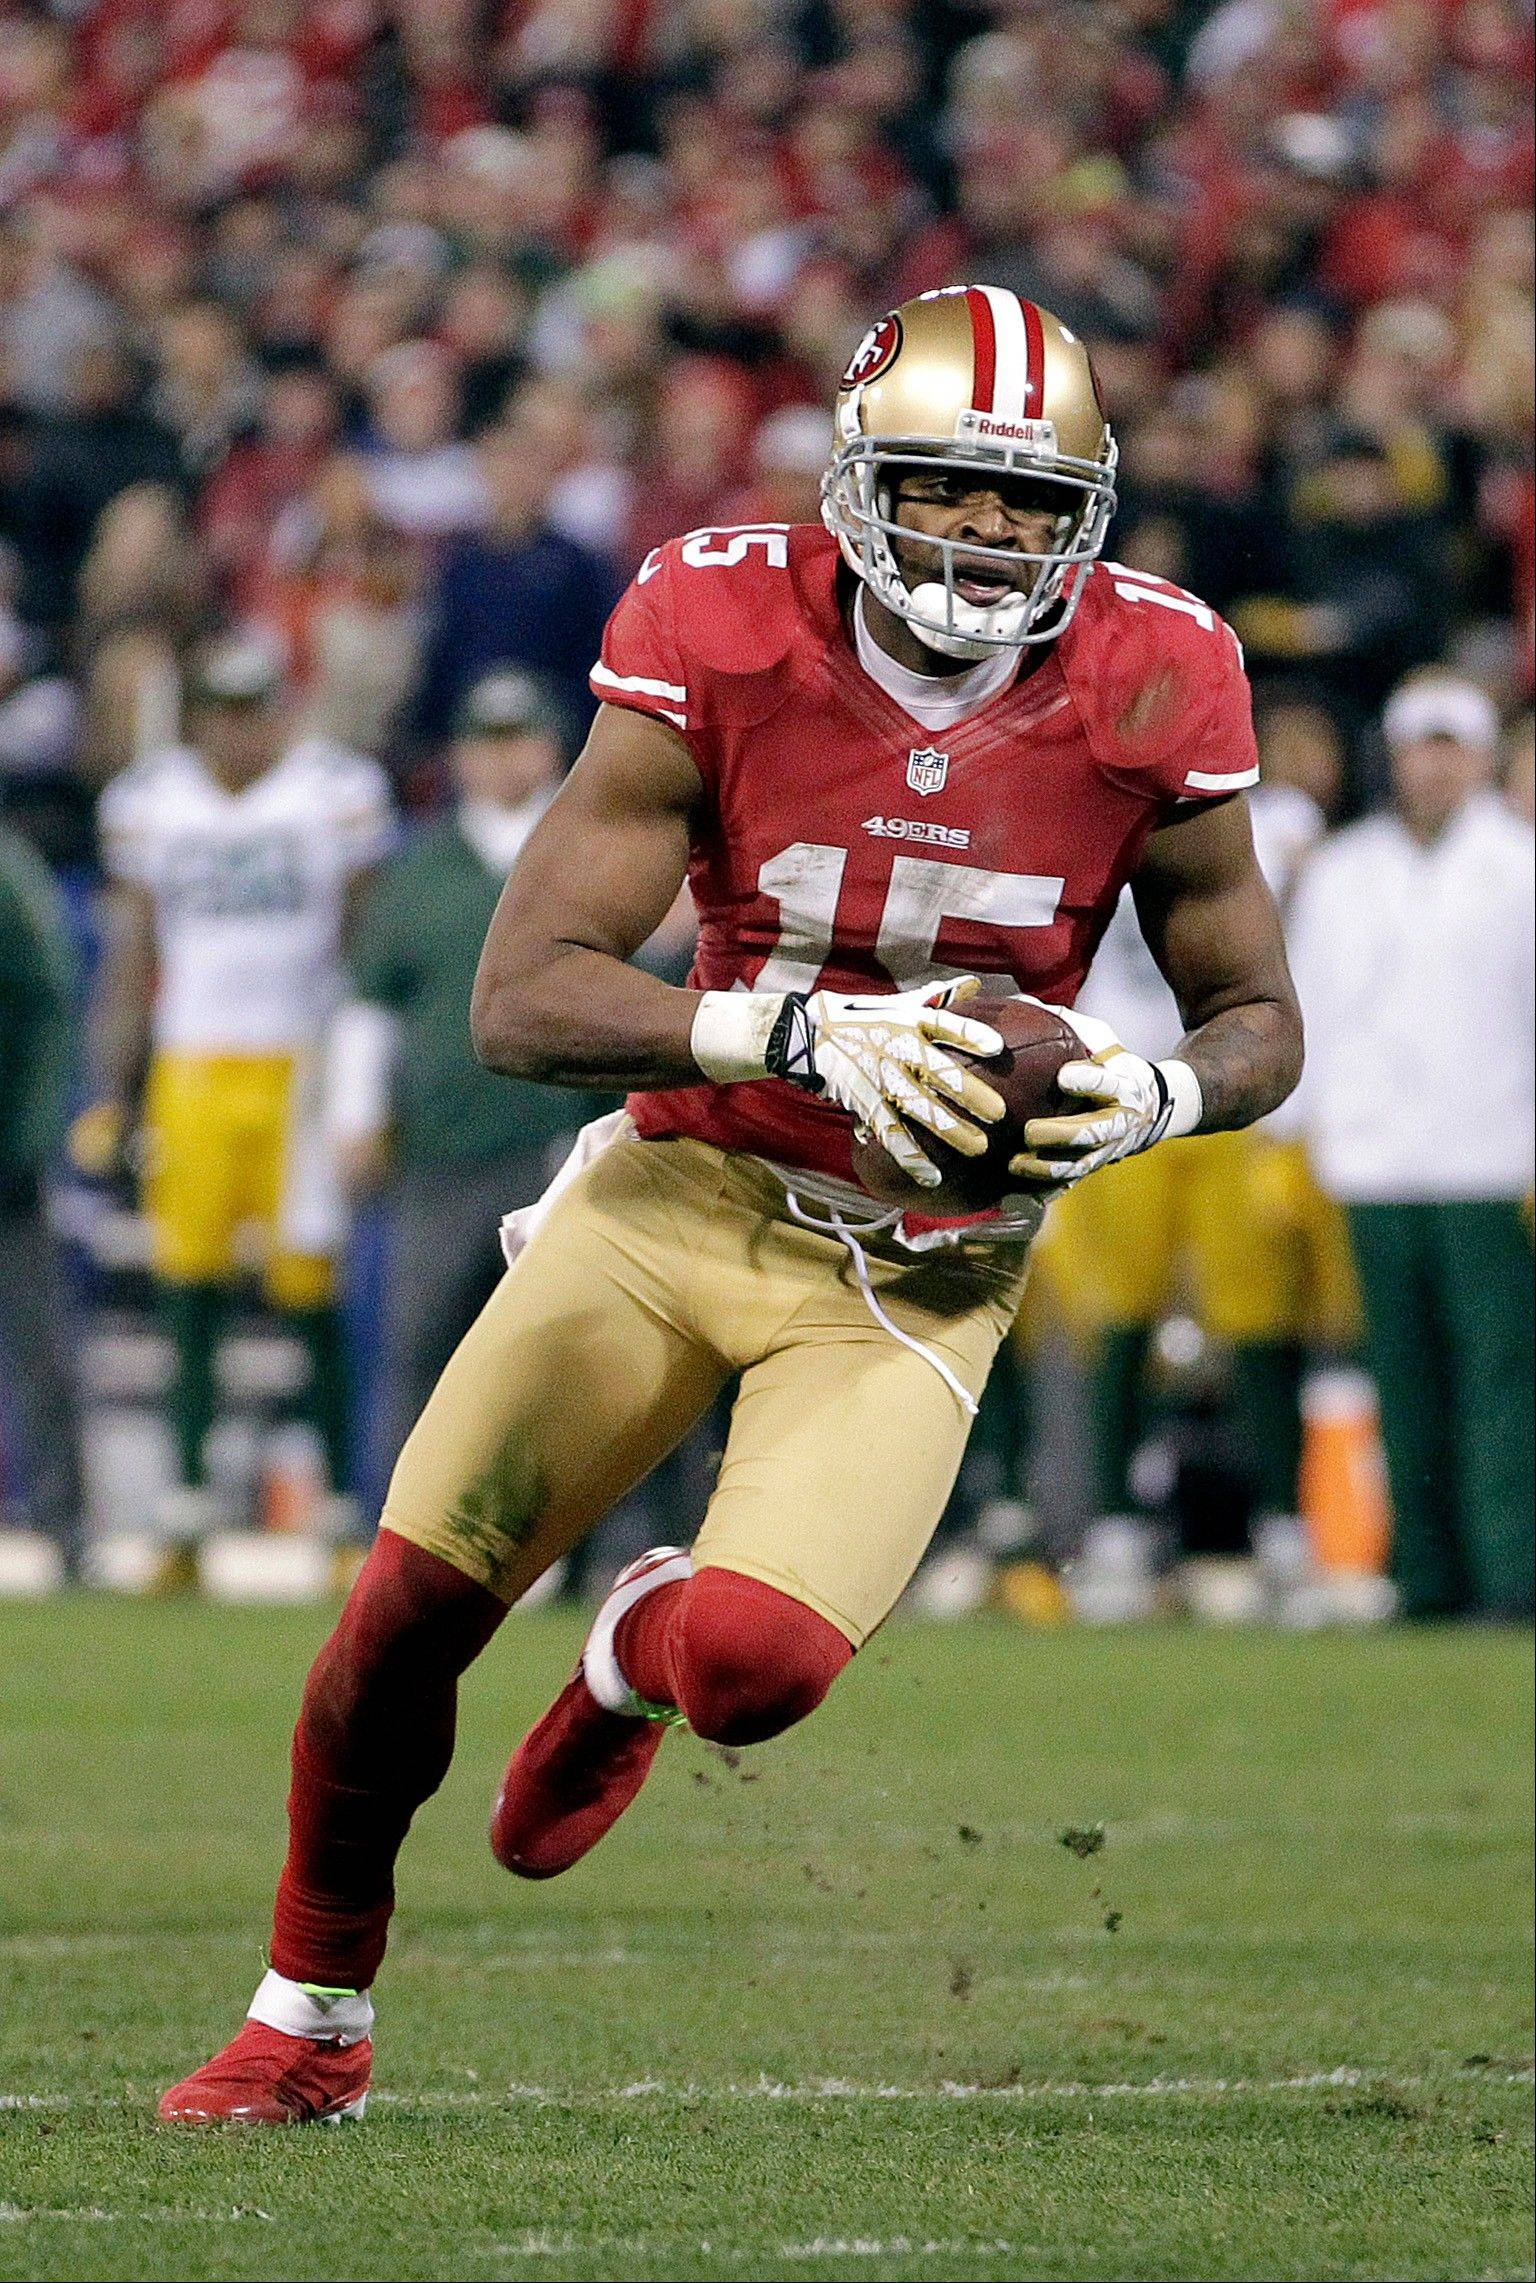 Police in San Francisco received a report of a sexual assault involving 49ers receiver Michael Crabtree.